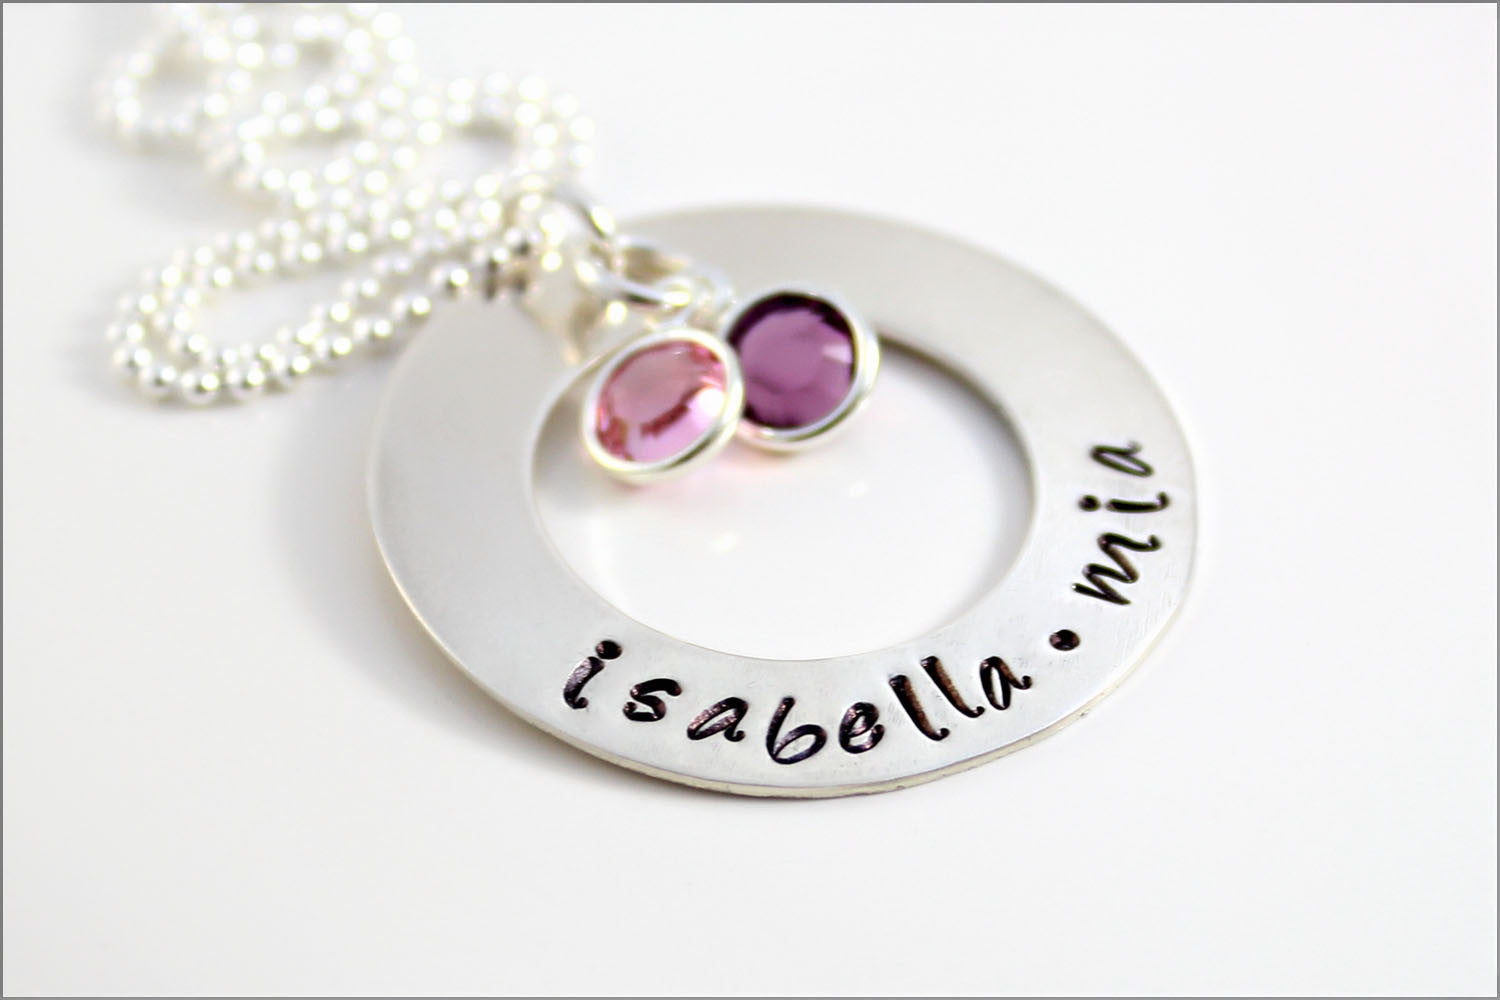 e9d55a49d67c3 Personalized Mom Necklace | Custom Gifts for Her, Silver Birthstone  Necklace, Hand Stamped Mother's Necklace, Gifts for Mom | Mother's Day Gift